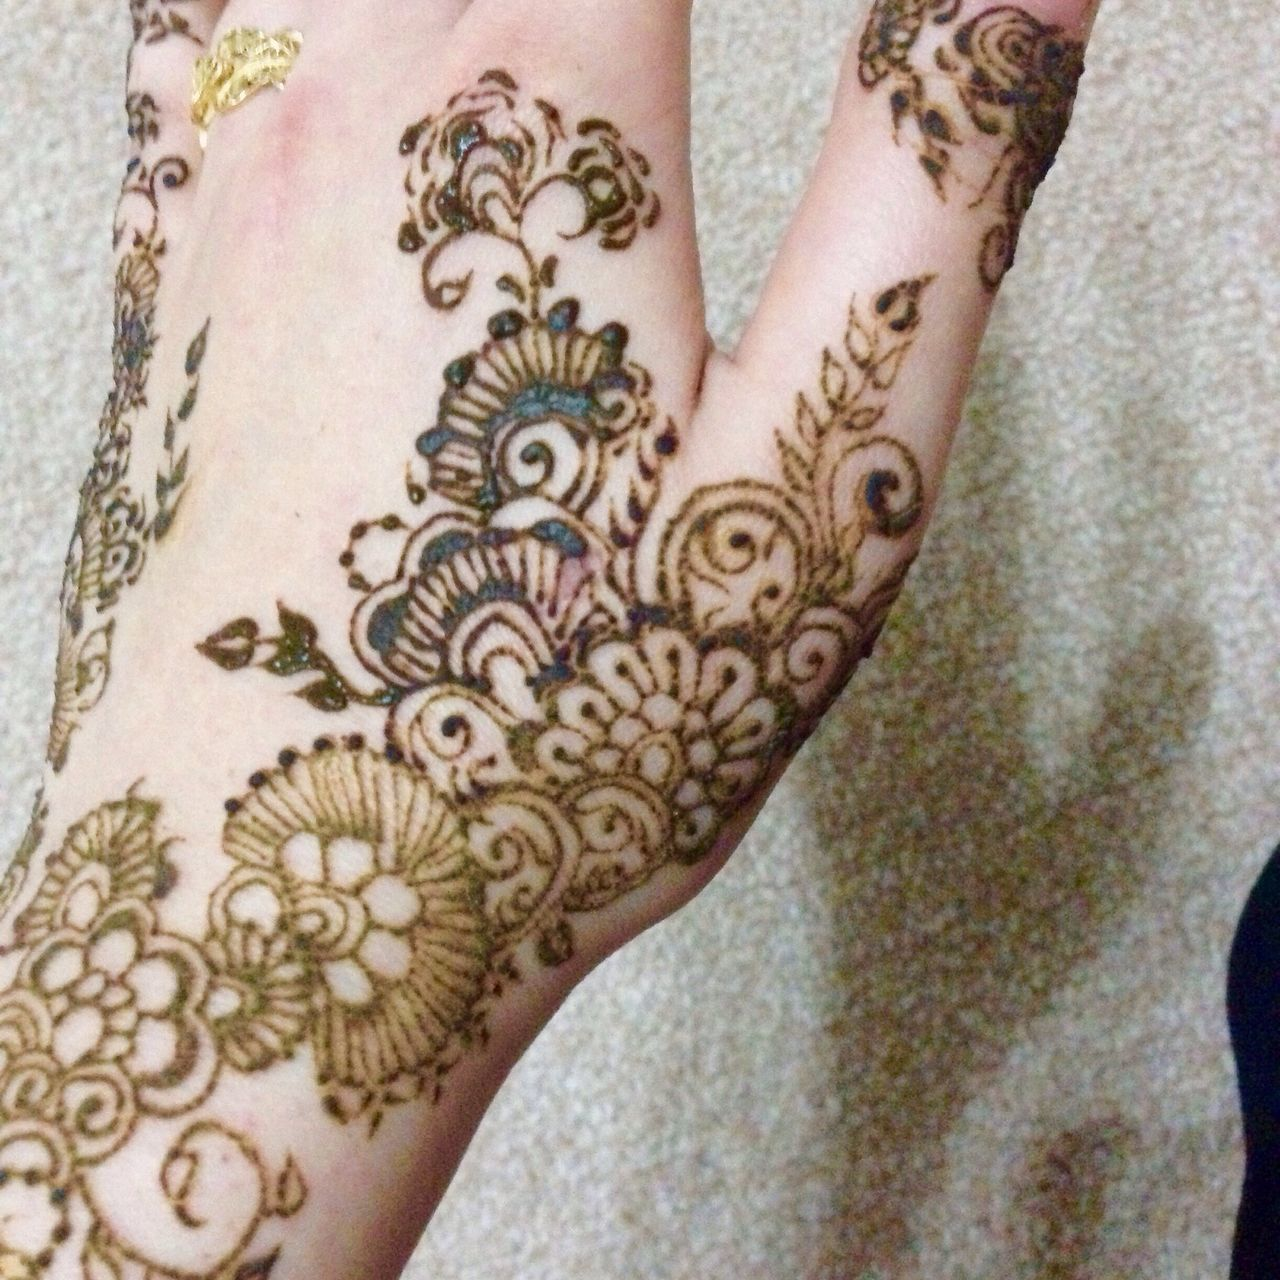 tattoo, henna tattoo, floral pattern, design, art and craft, one person, human body part, human hand, only women, one woman only, close-up, real people, high angle view, pattern, indoors, fashion, women, midsection, adult, adults only, flower, people, low section, one young woman only, day